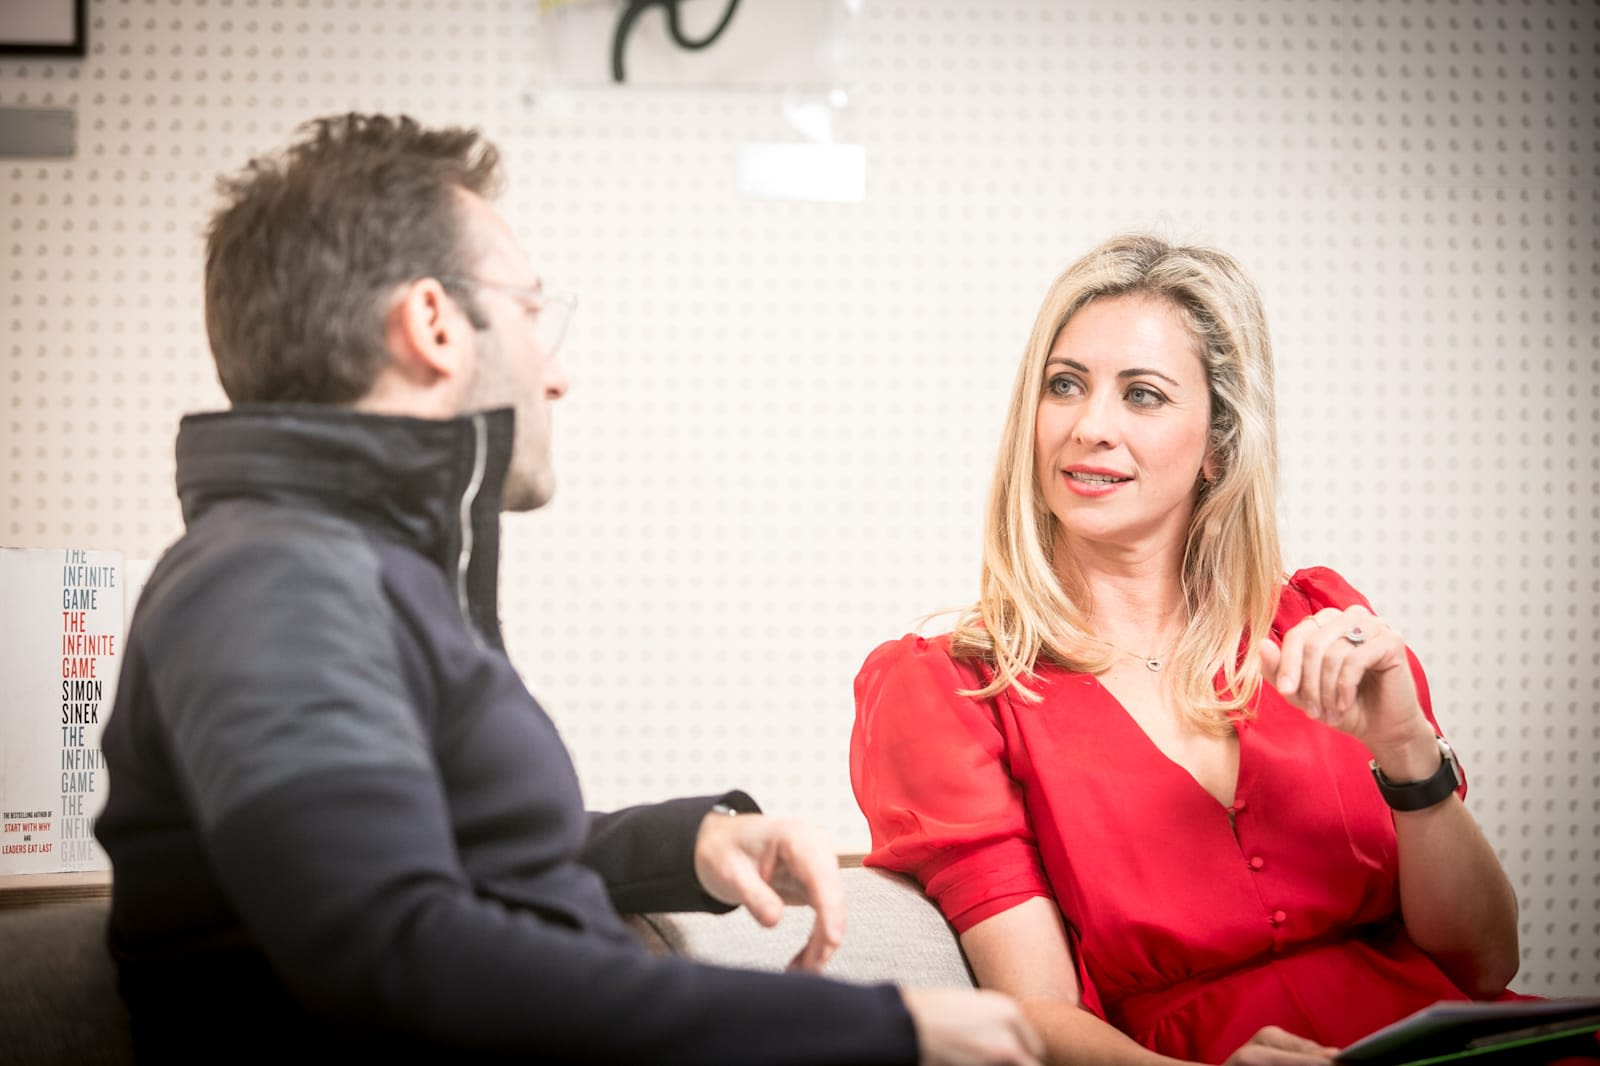 Simon Sinek and Holly Branson in conversation